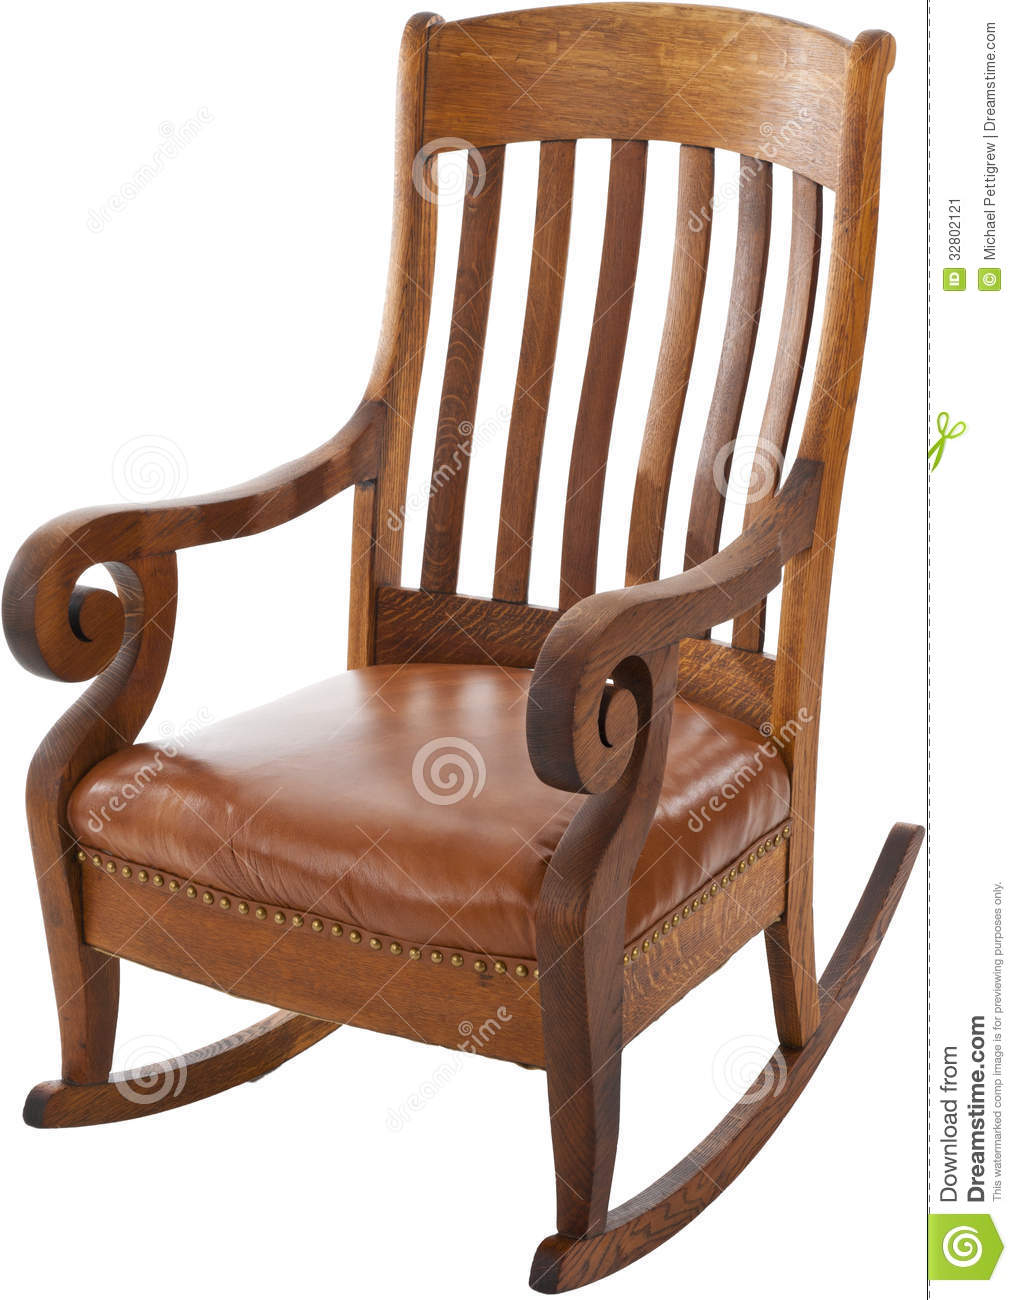 Antique rocking chairs - Antique Background Chair Isolated Rocking